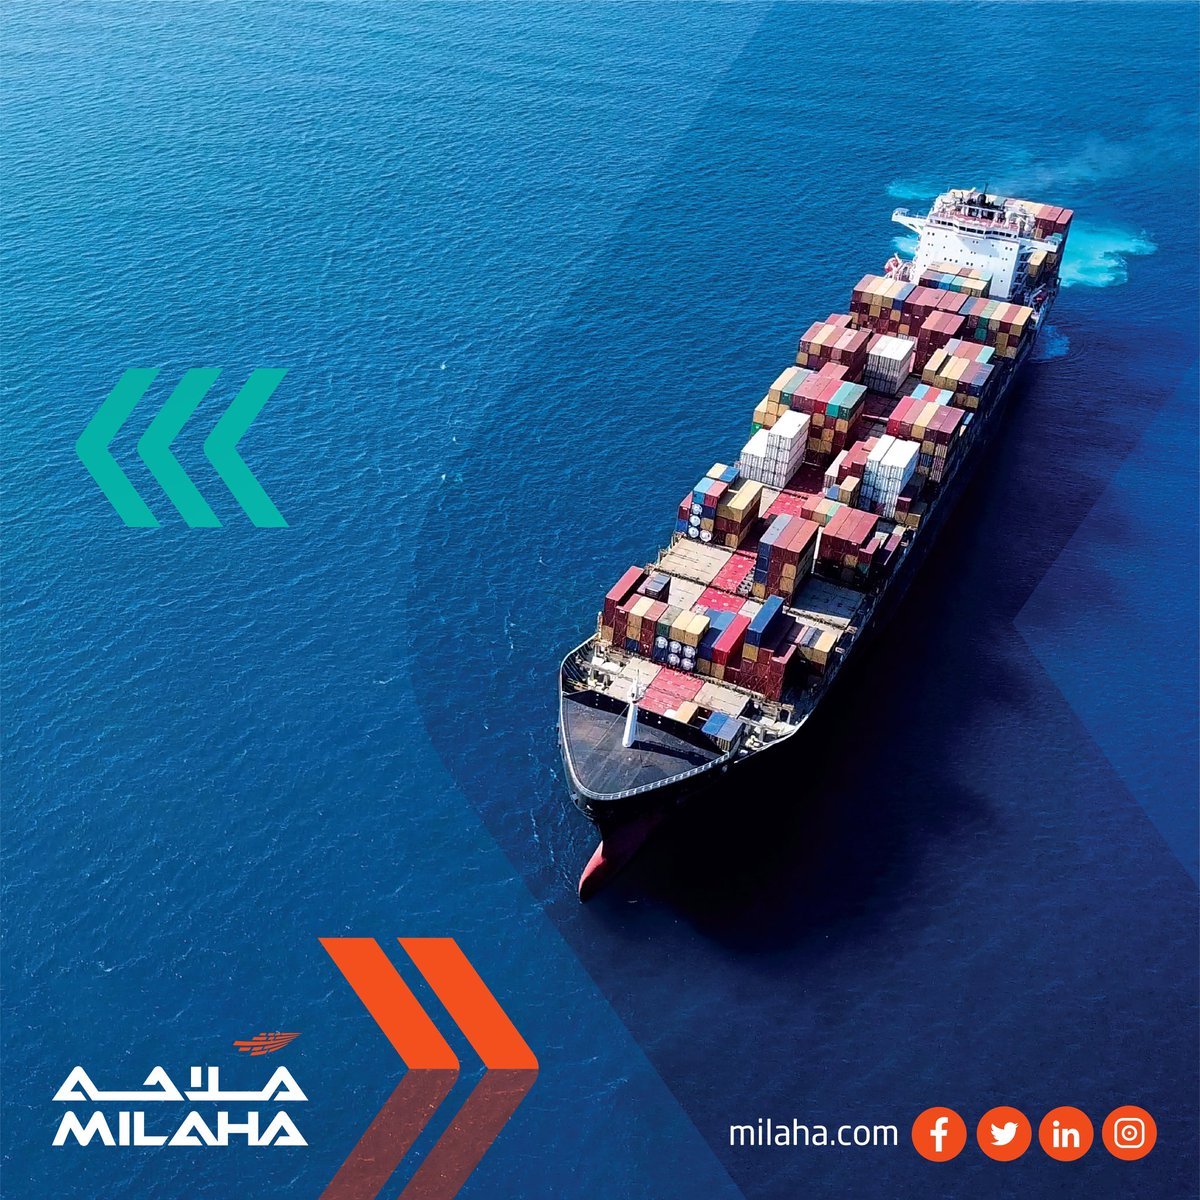 Milaha Reorganizes to Focus on Core Business Growth lnkd.in/ea9wX5a شركة ملاحة تُعيد تنظيم هيكلها للتركيز على الاعمال في القطاعات الاساسية lnkd.in/eVQ9sTS #milahatogether #qatarnavigation #qatar #maritime #logistics #capital #offshore #trading #petrochem #gas